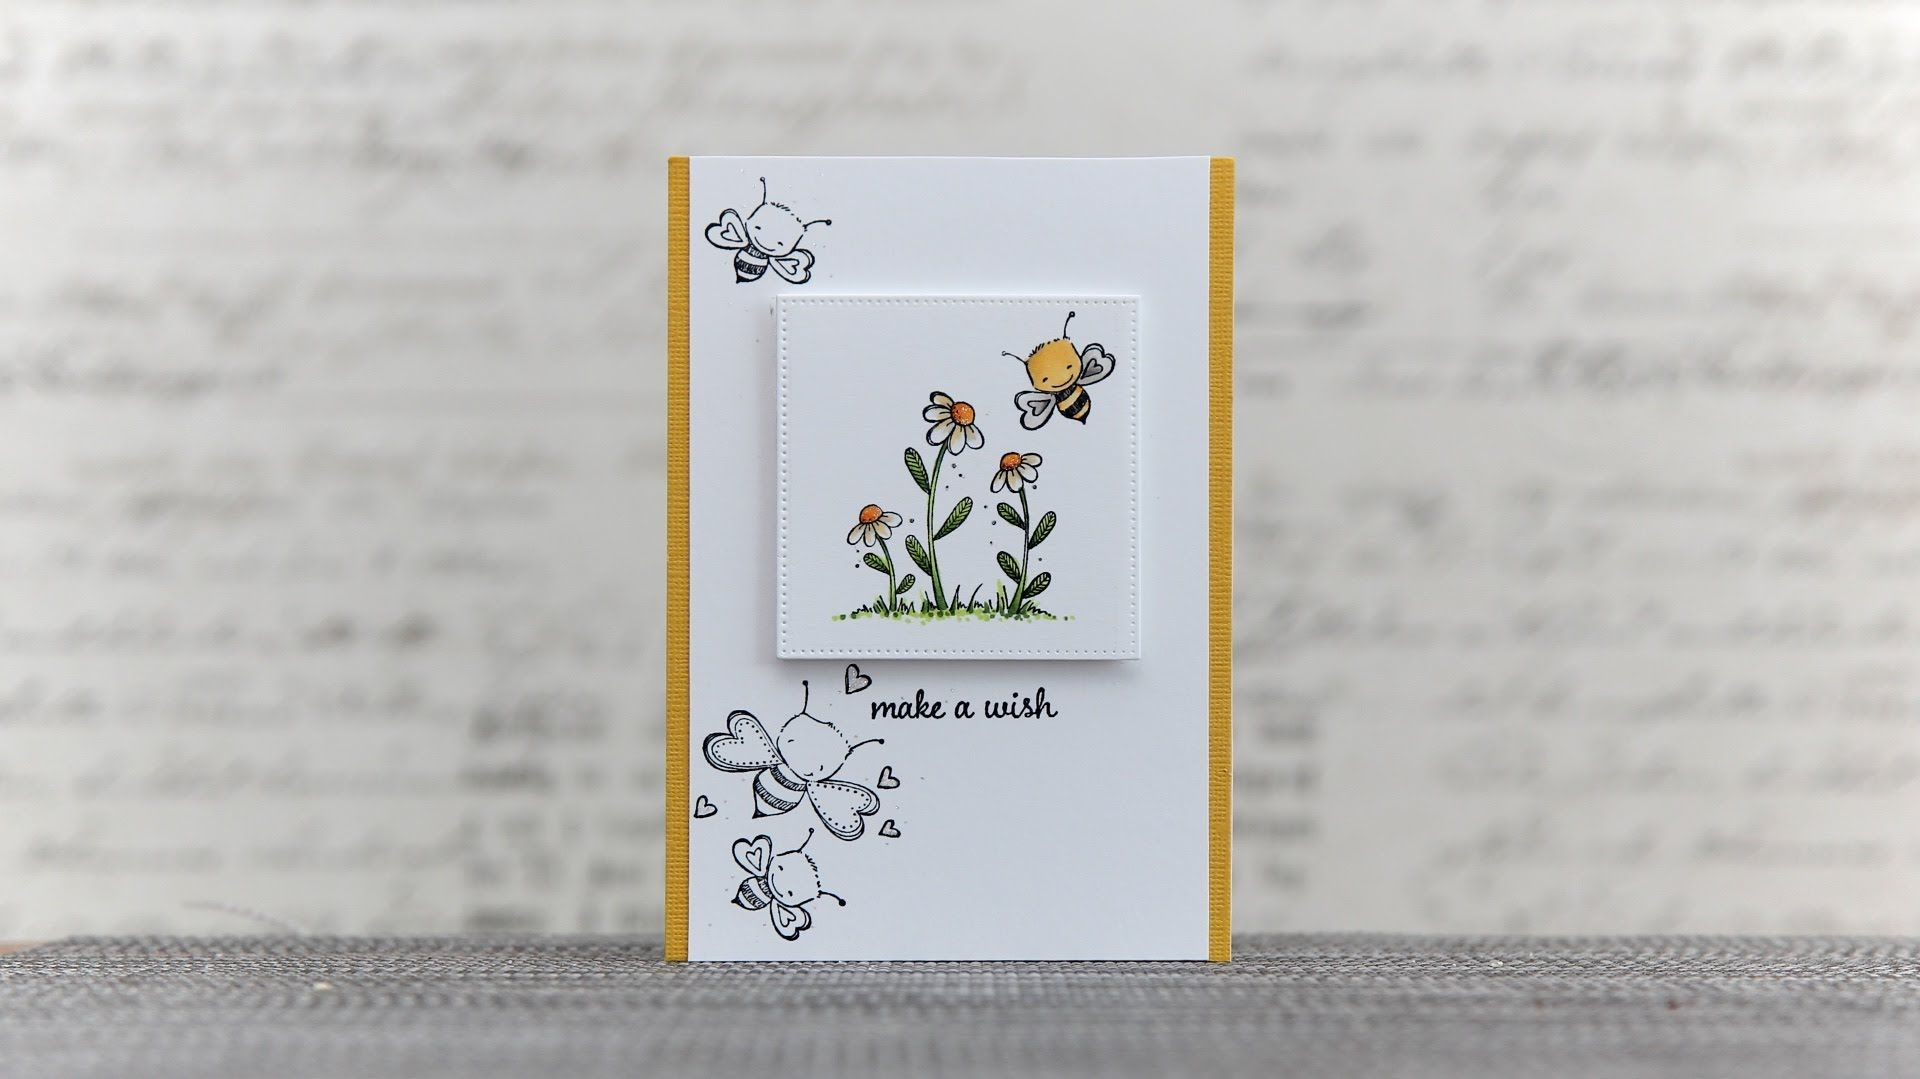 Purple Onion Designs' Bees with Copic Markers